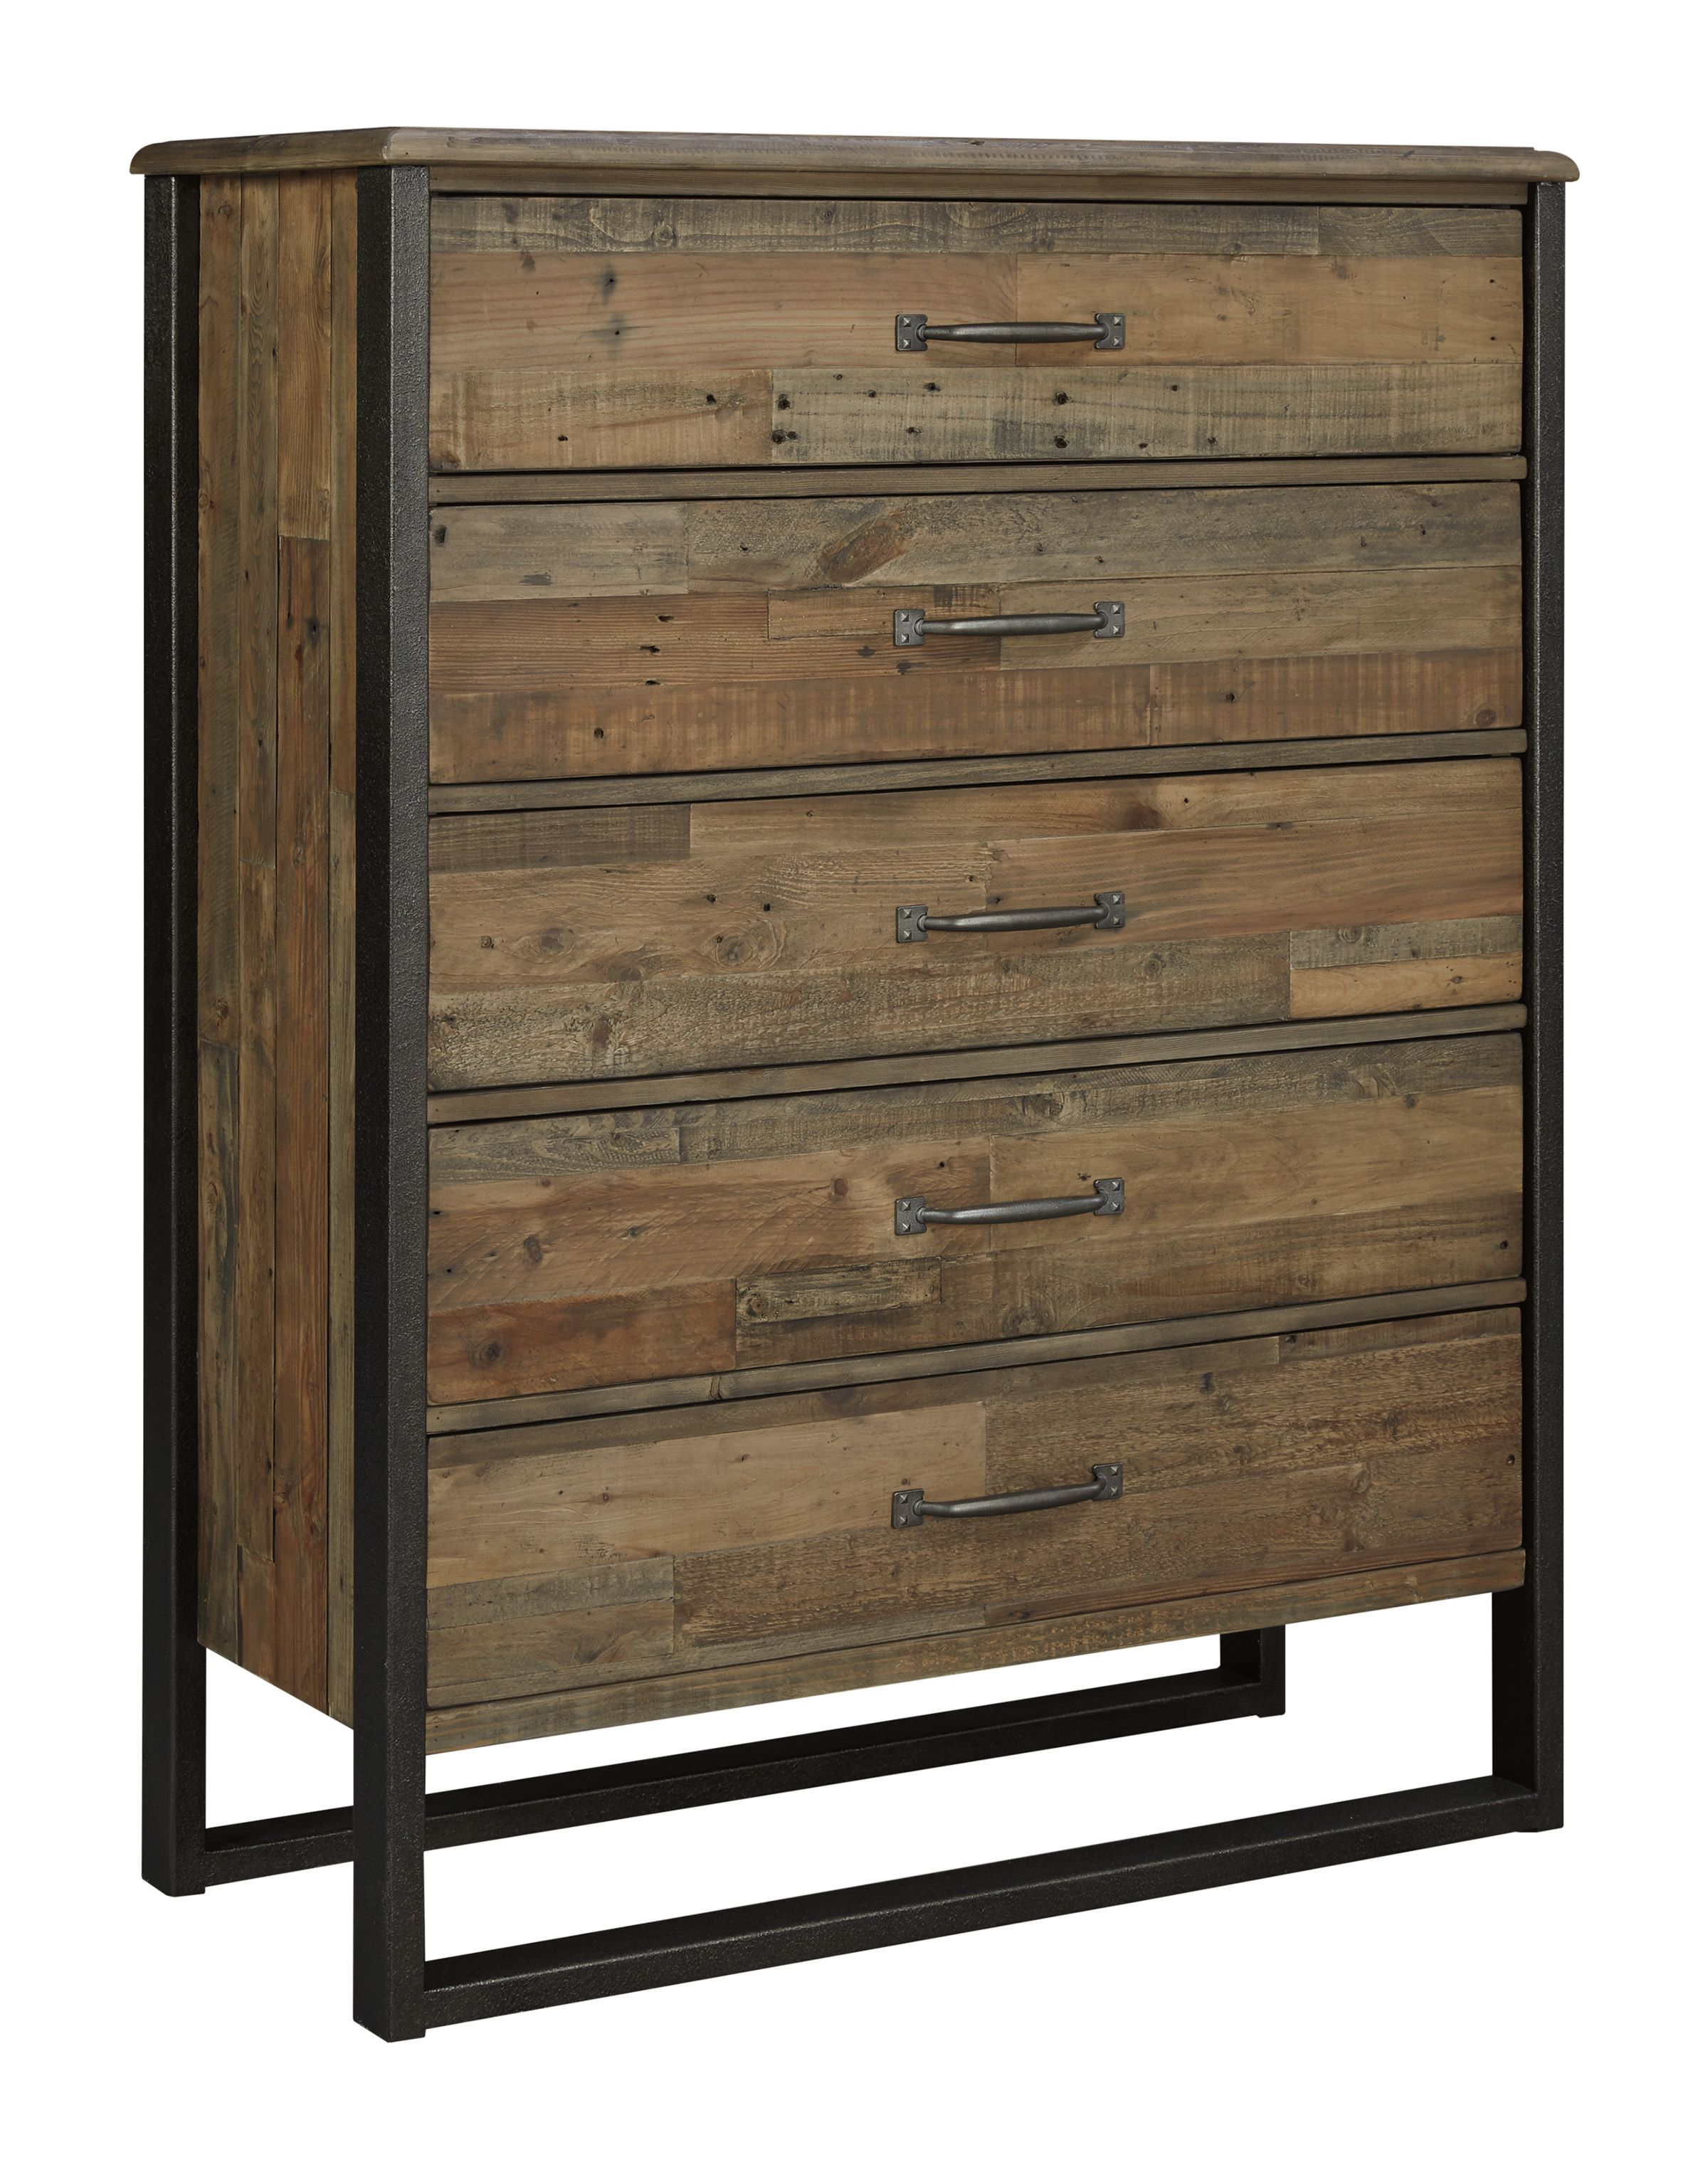 Sommerford Chest, ASHLEY Furniture Homestore, Atrium, Dartmouth, NS